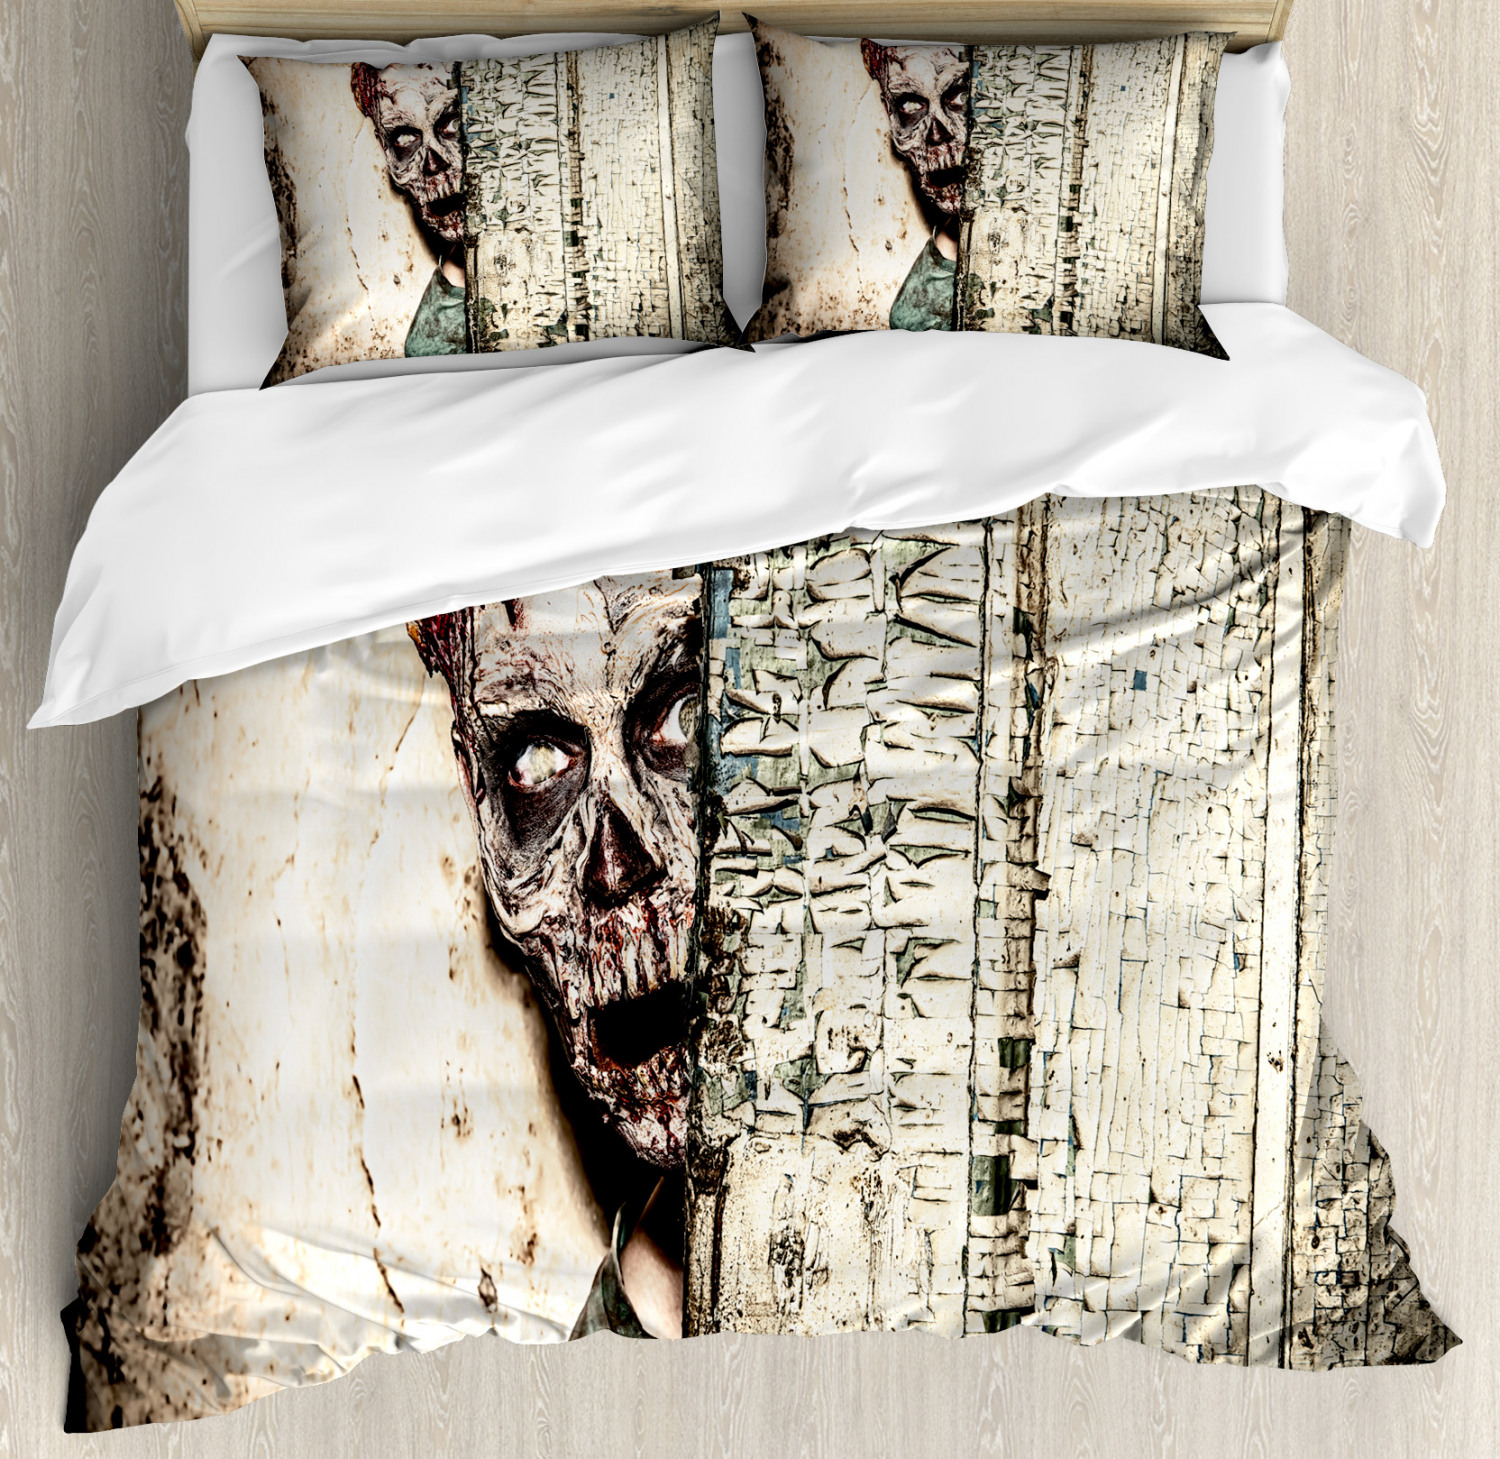 Zombie Duvet Cover Set with Pillow Shams Old House Vampire Print